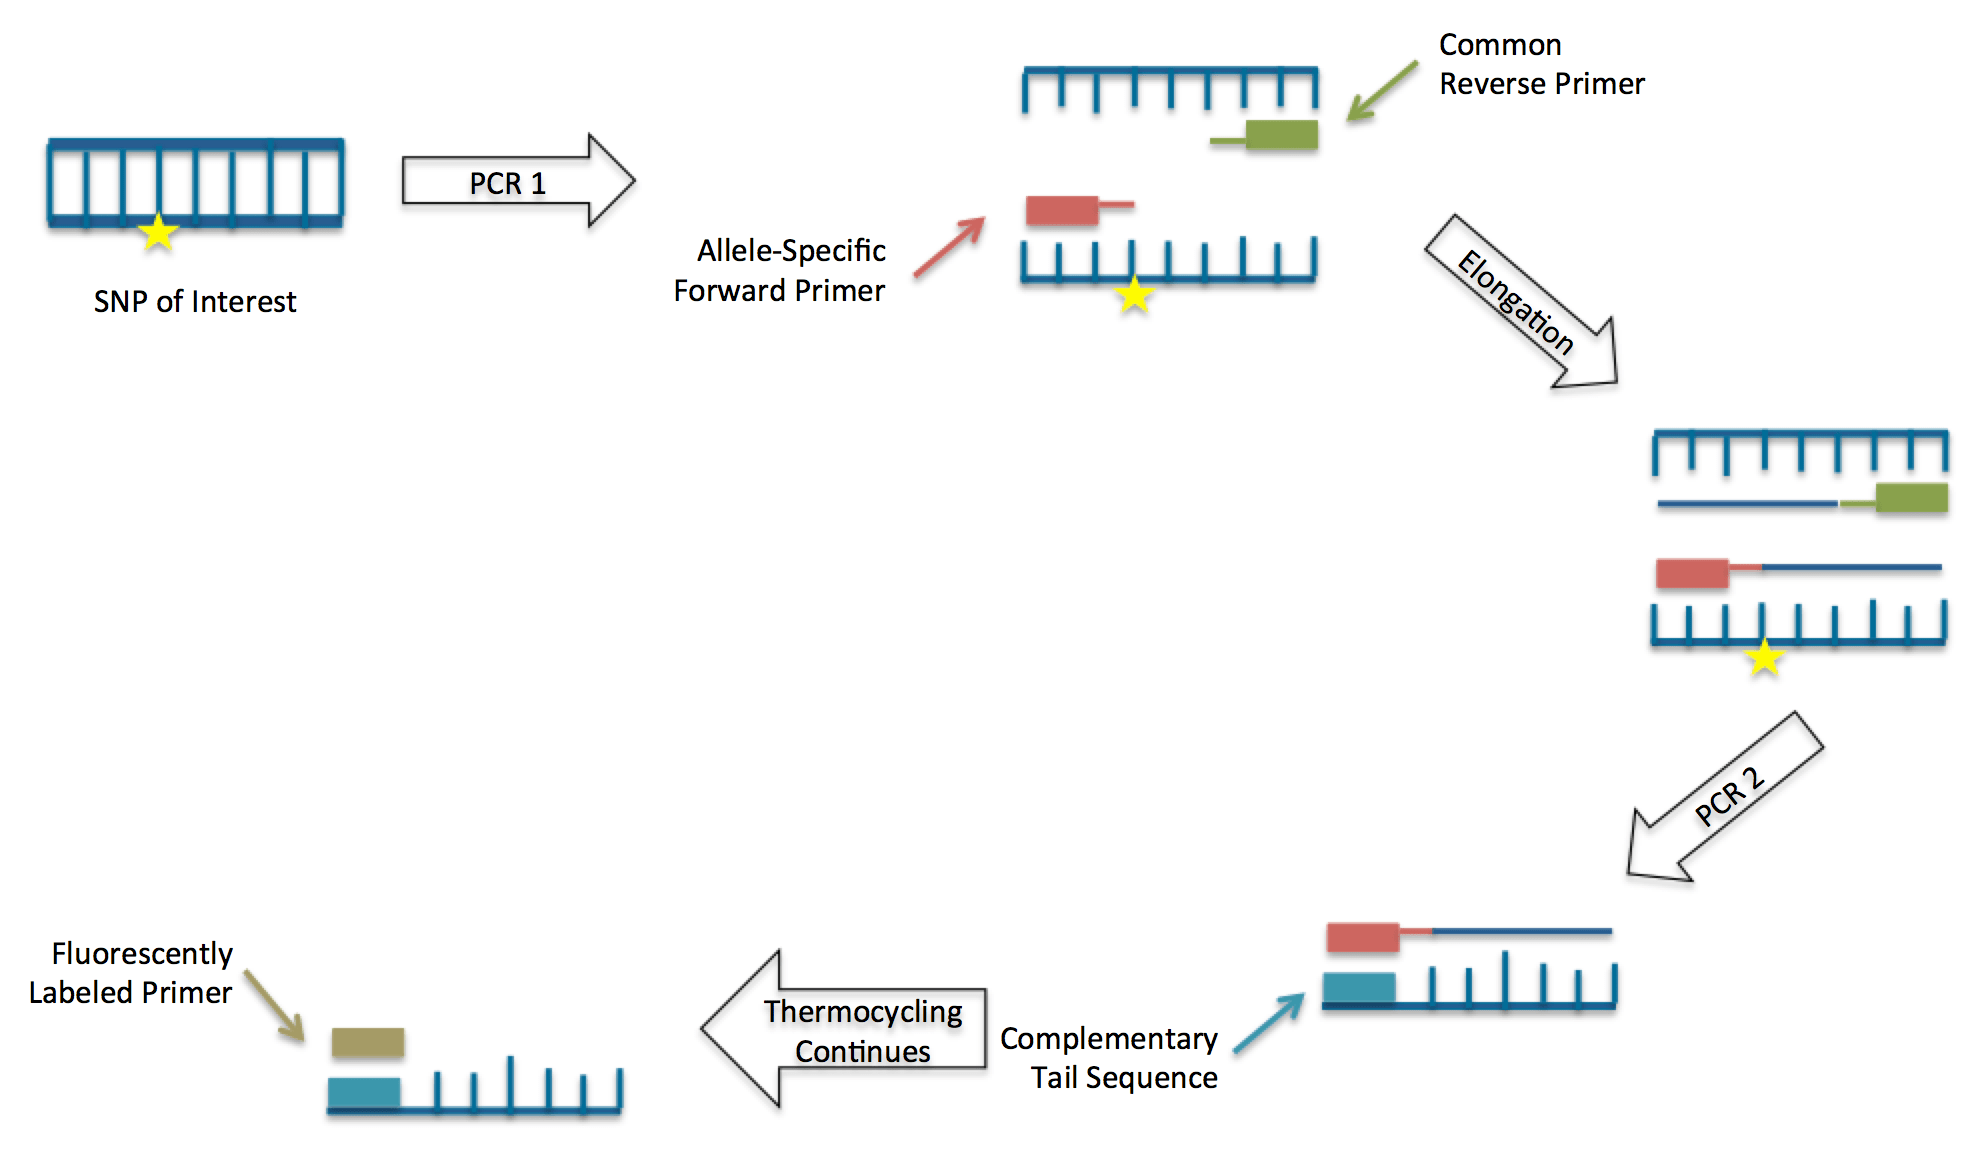 polymerase chain reaction diagram sprinkler system wiring kompetitive allele specific pcr (kasp) - wikiwand